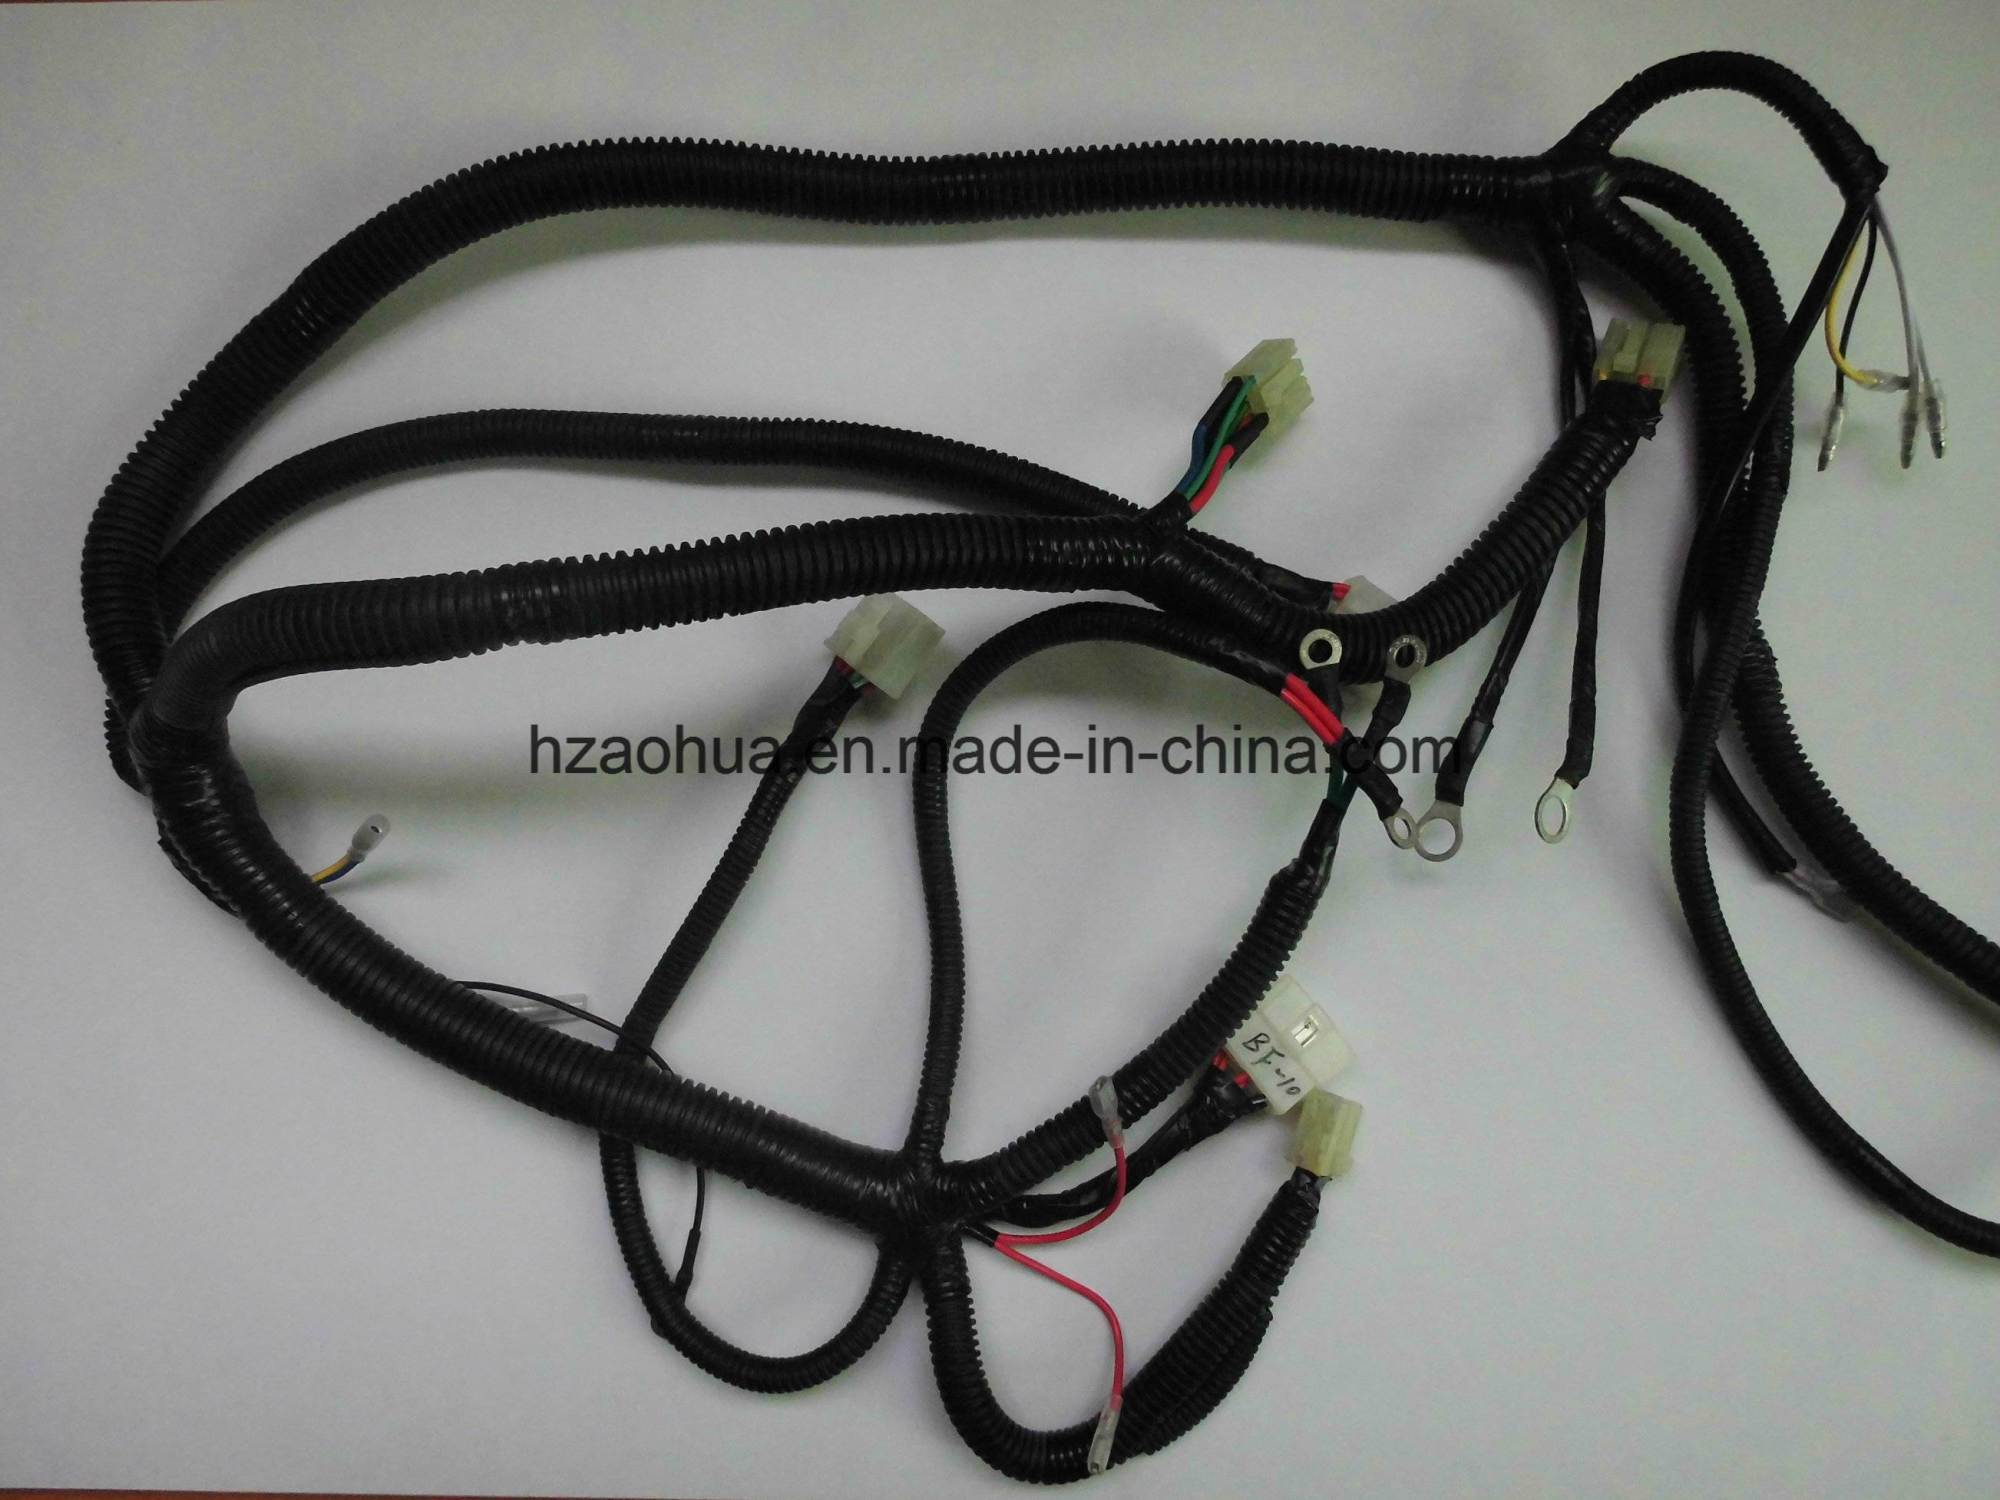 hight resolution of china atv wire harness quad wire harness china cable assembly harness loom